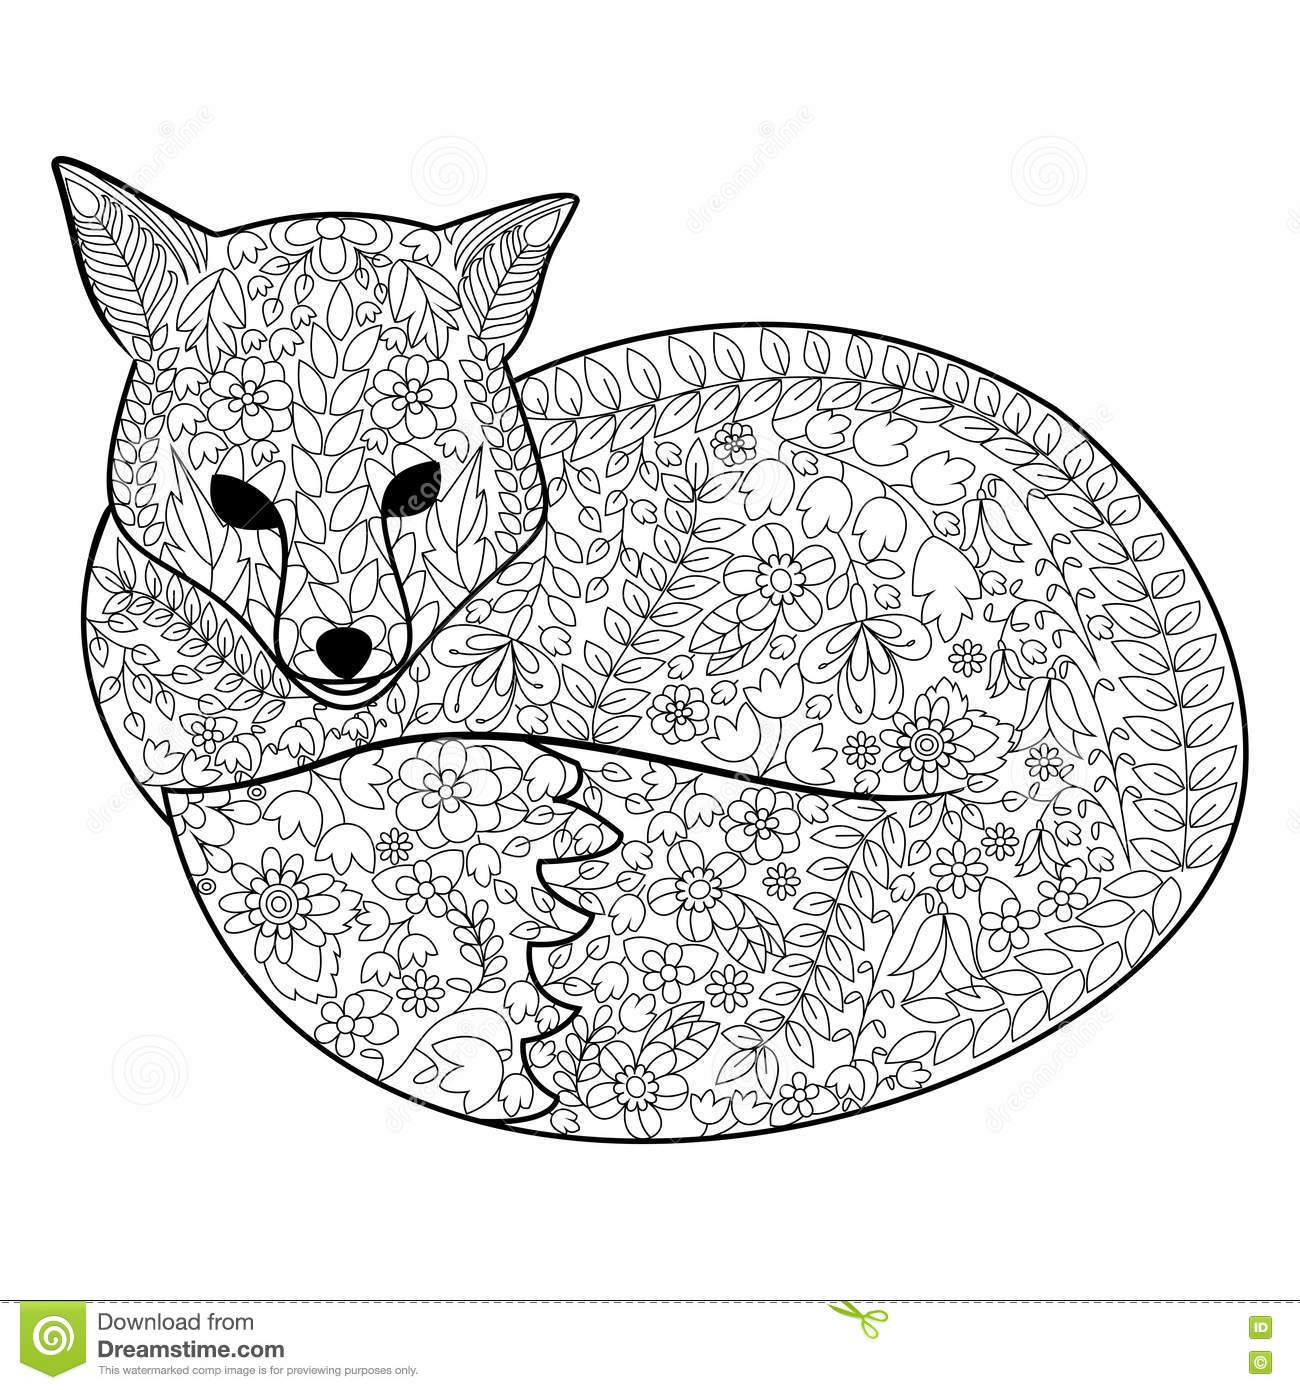 fox coloring pages for adults Fox Coloring Book For Adults Vector Stock Vector   Illustration of  fox coloring pages for adults